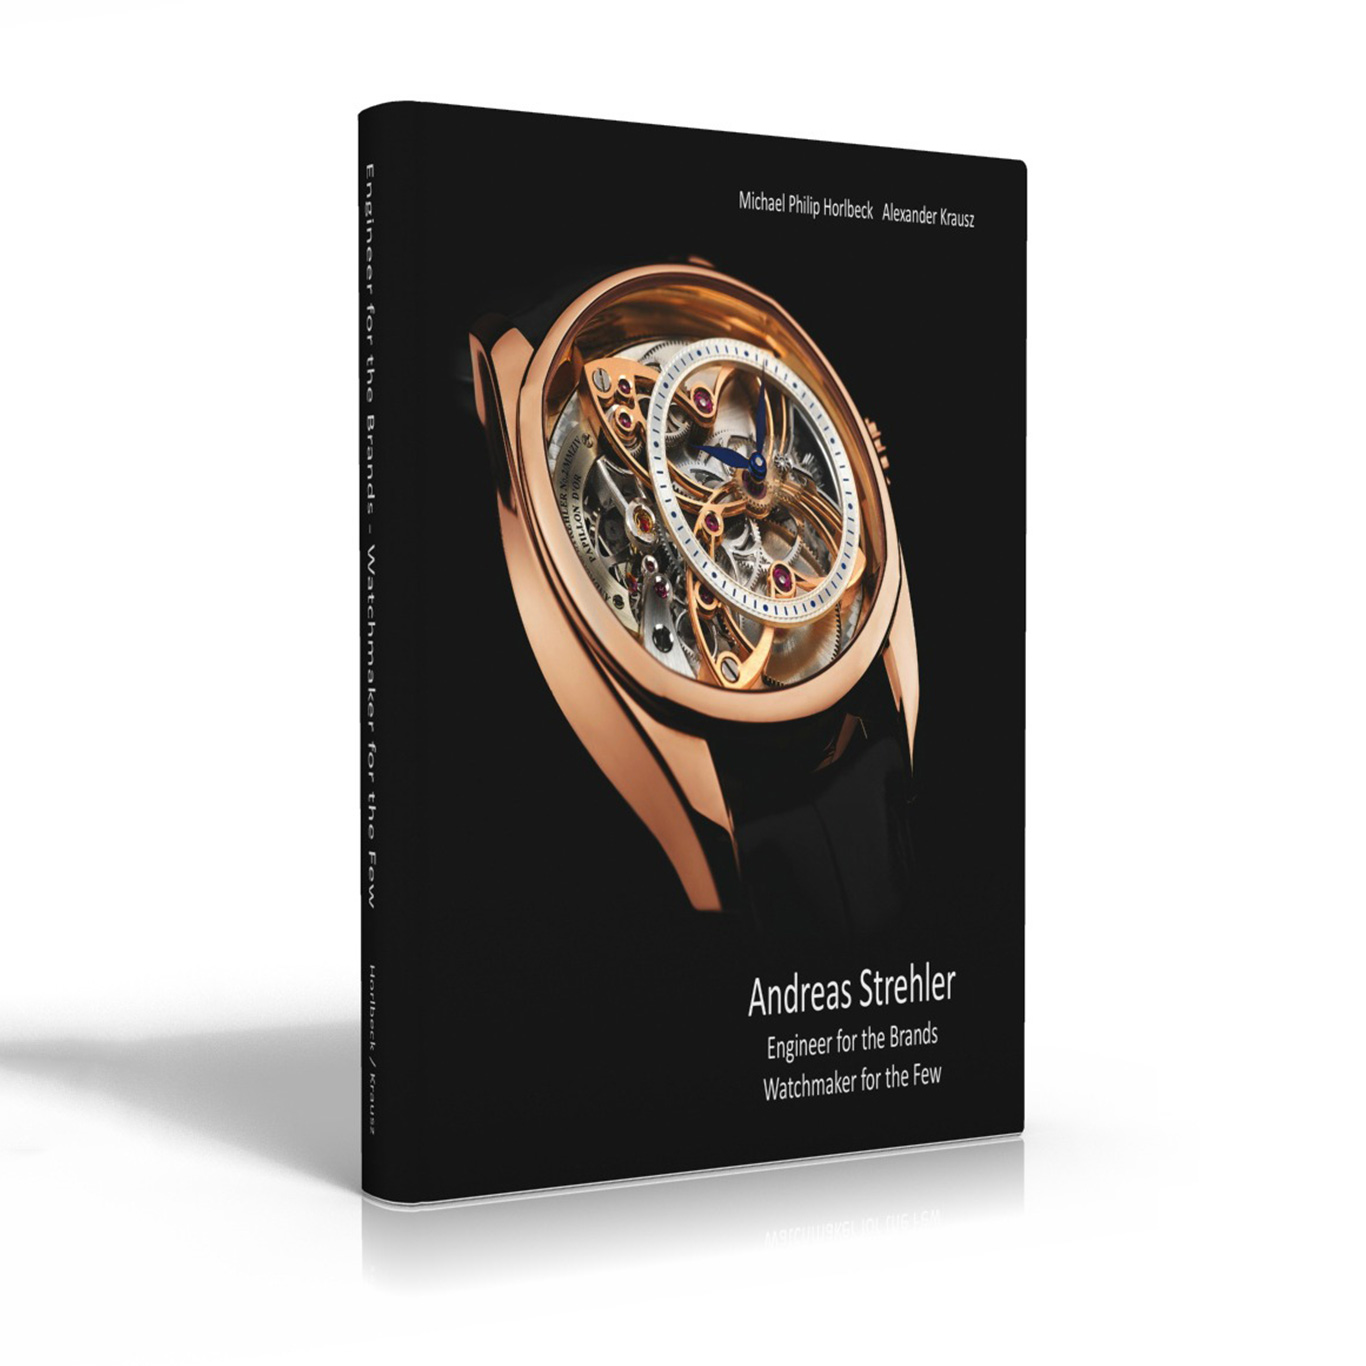 Andreas-Strehler-book-cover